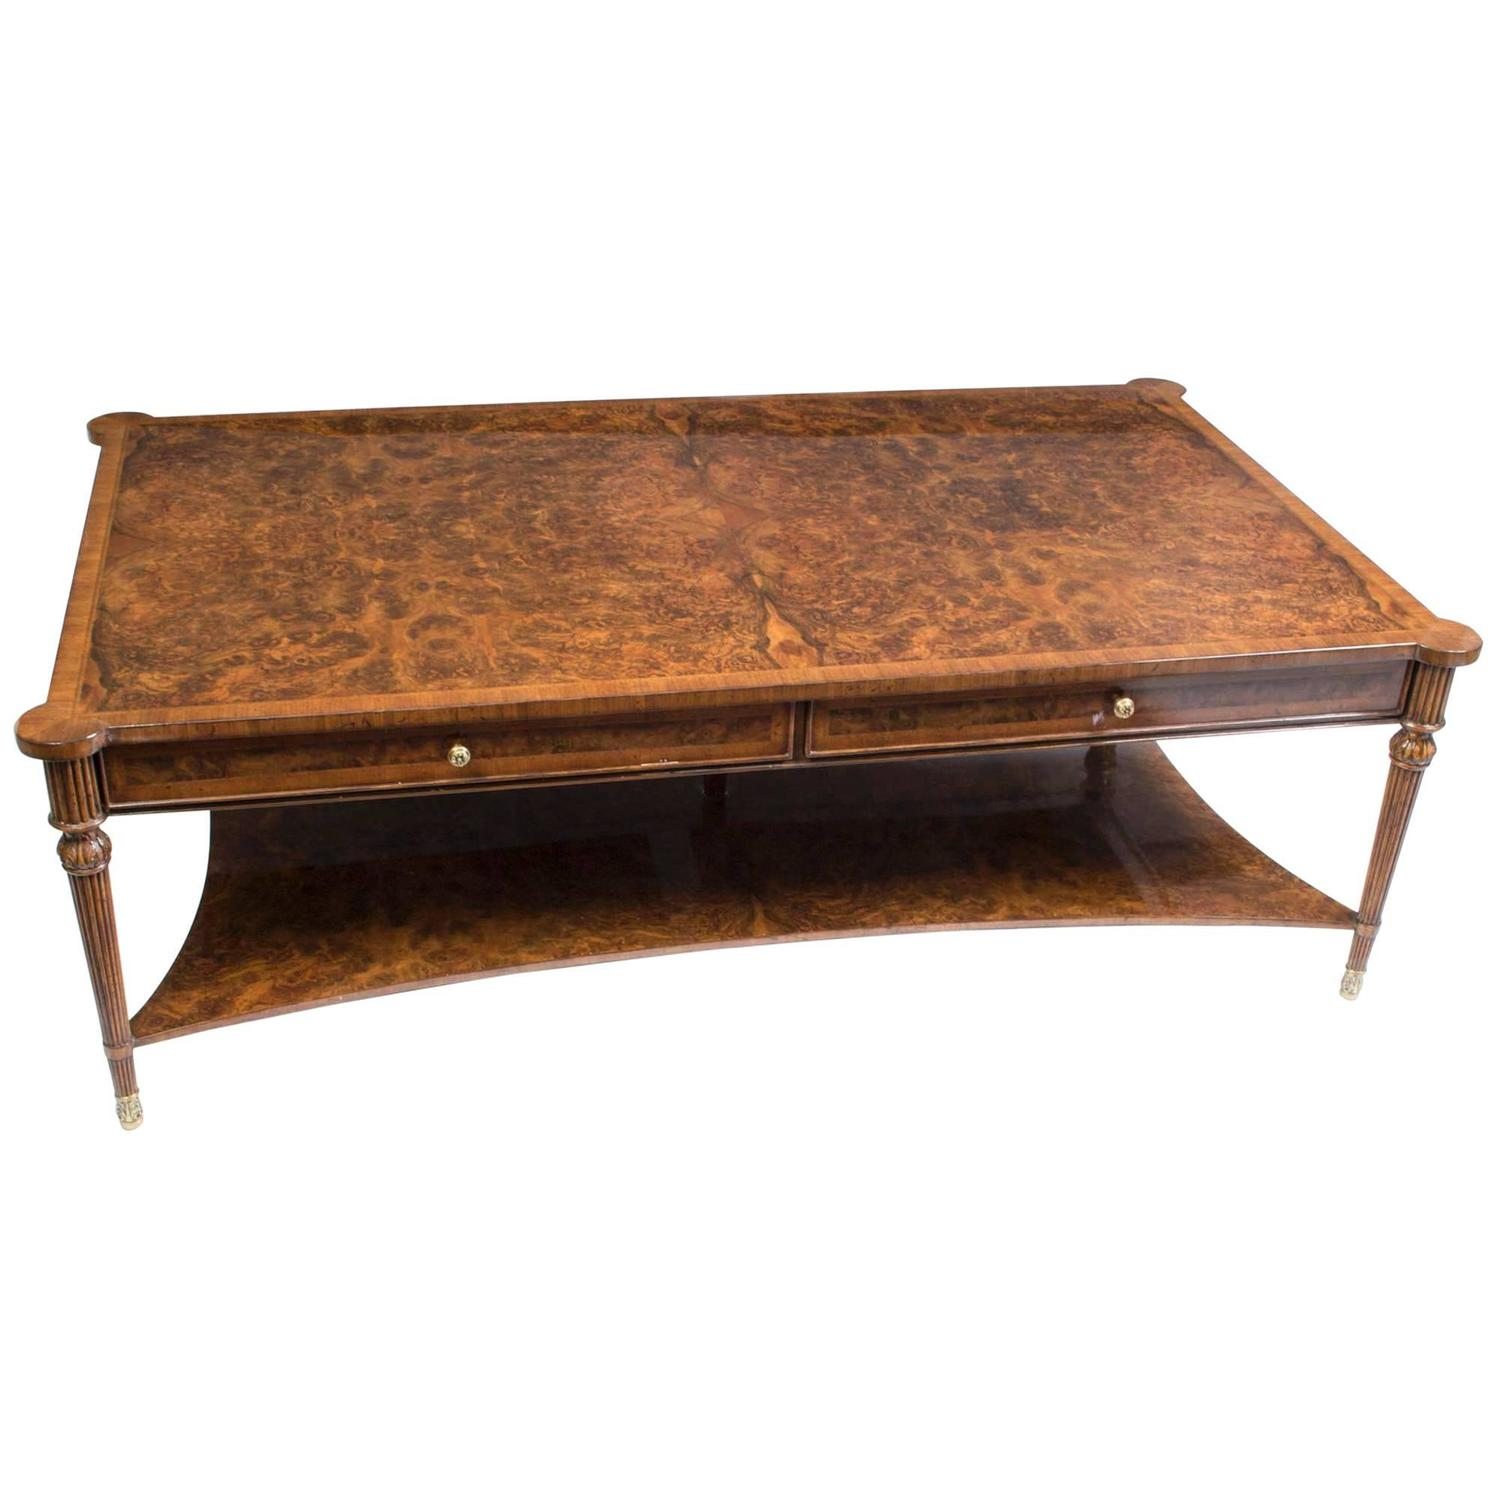 Elegant Burr Walnut Coffee Table With Two Drawers For Sale At 1stdibs